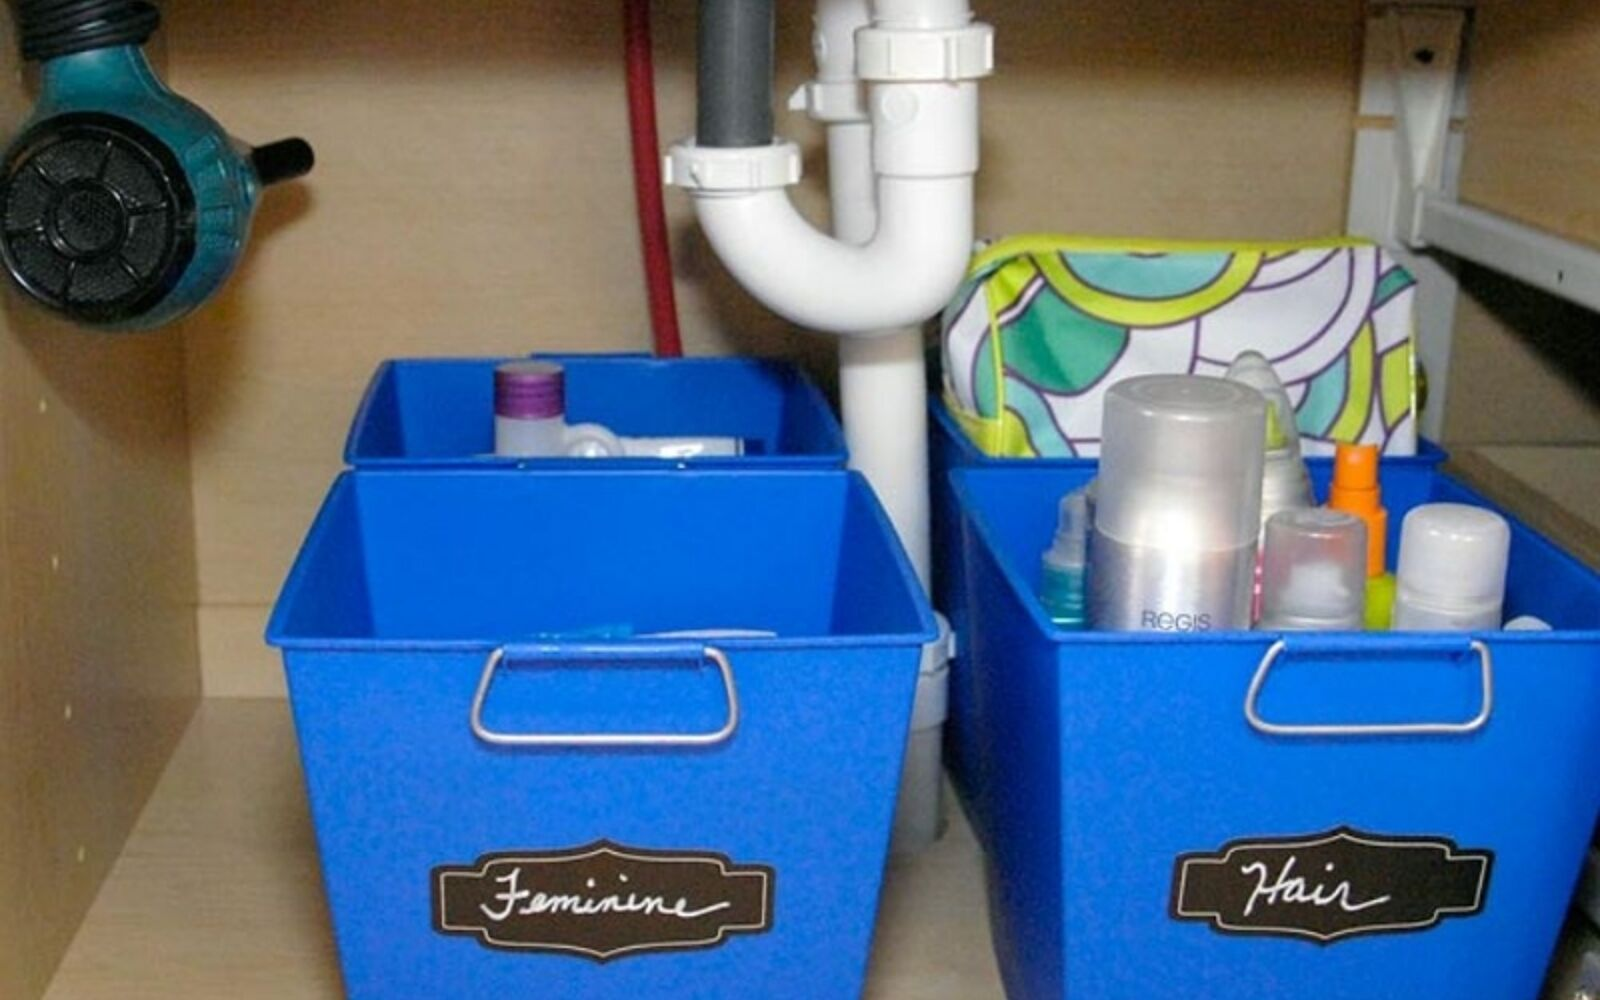 s 32 space saving storage ideas that ll keep your home organized, Organize your under the sink with bins